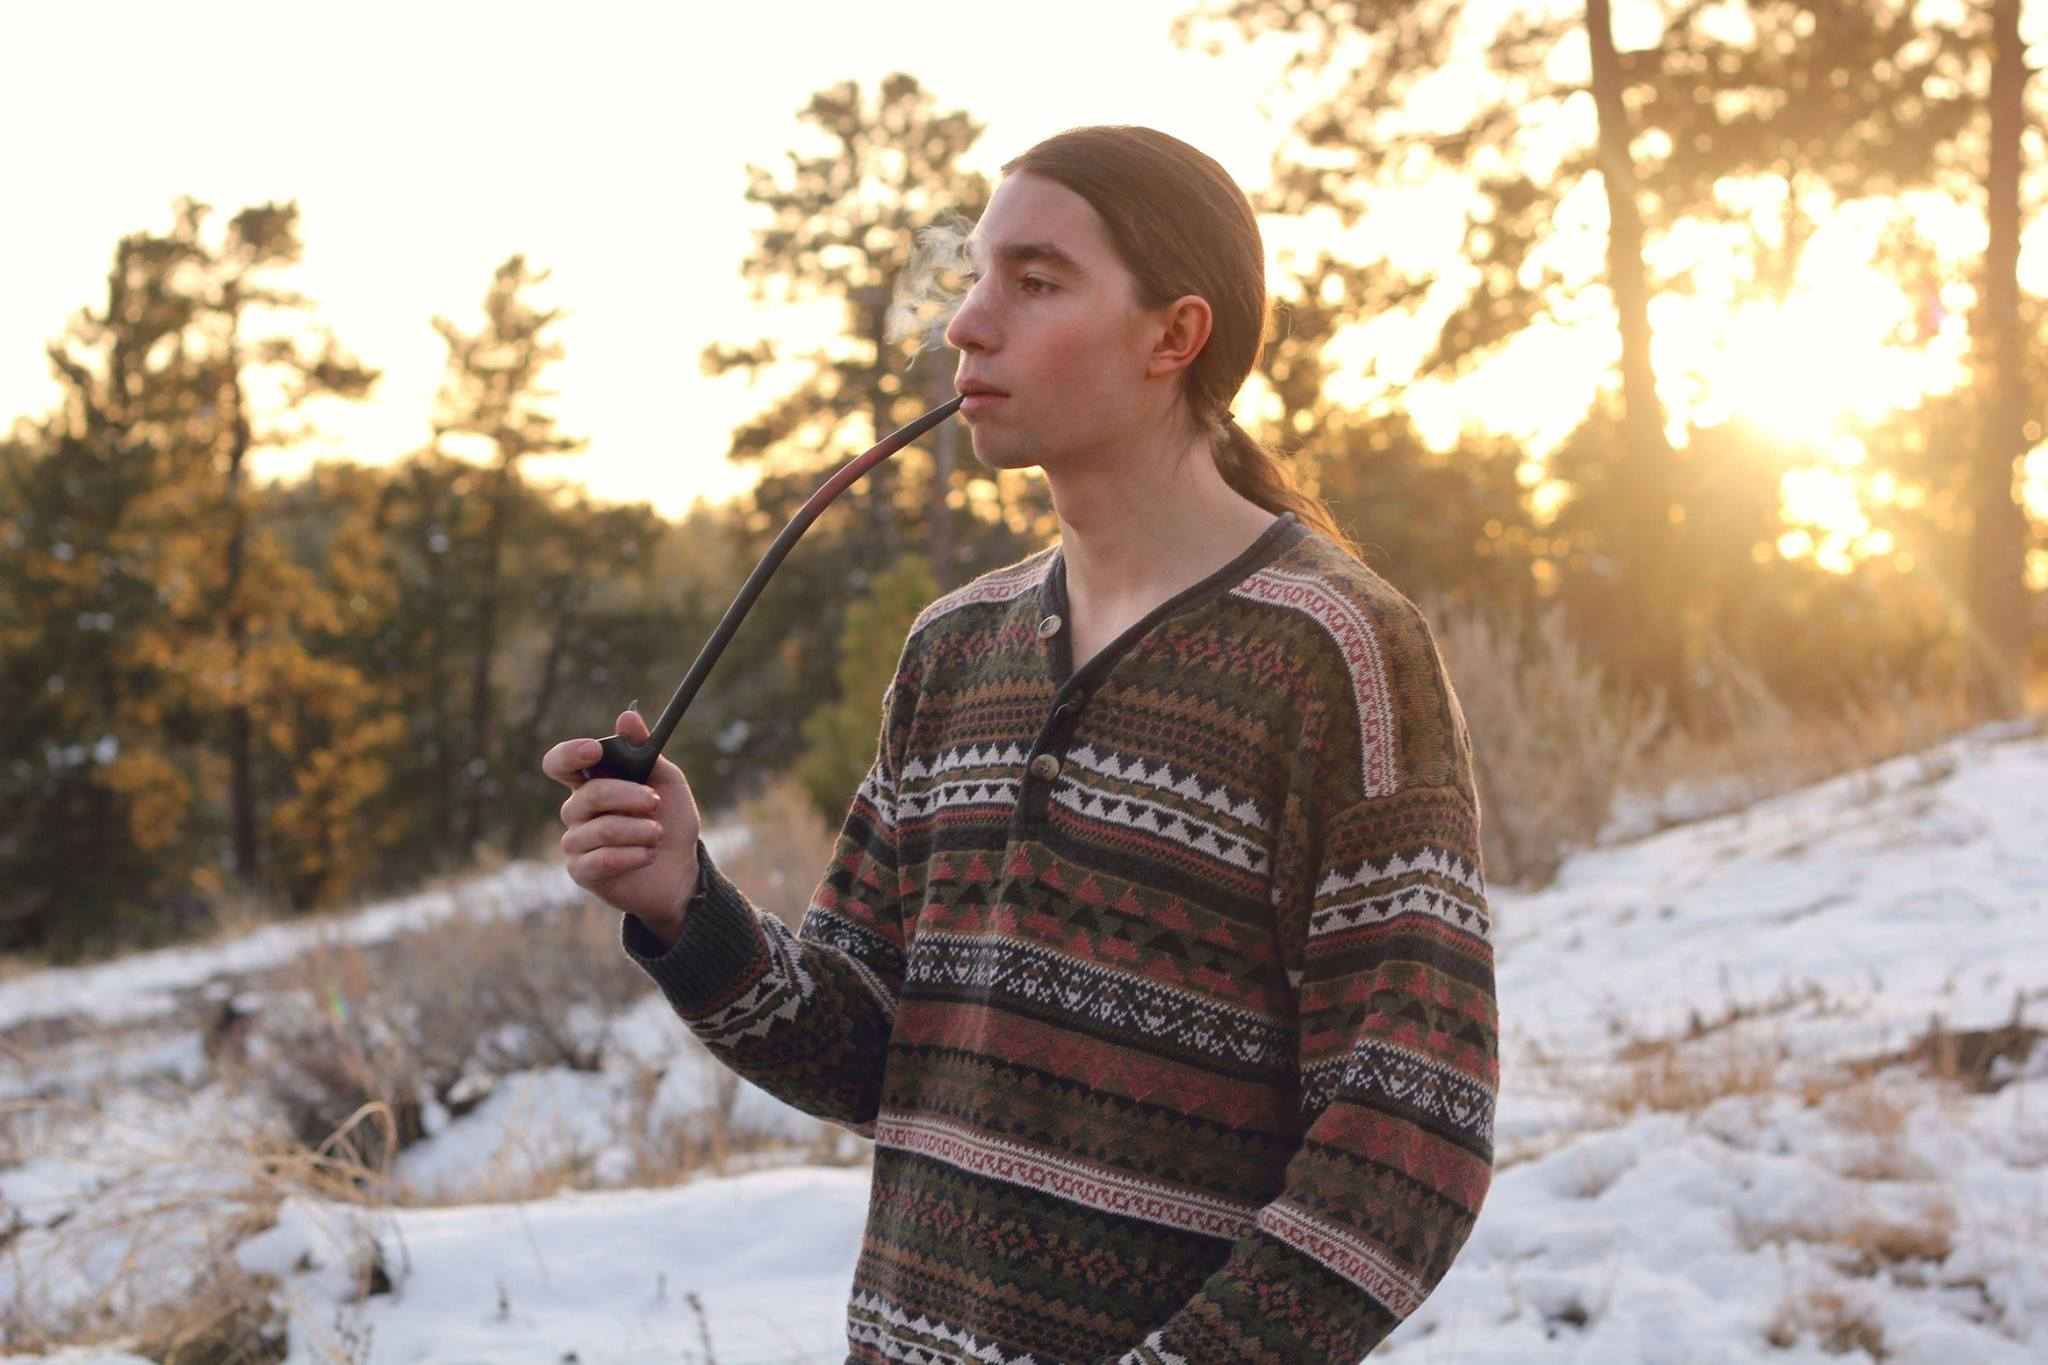 Nothing is smoother than some fresh, still, cold mountain air and pipe tobacco!